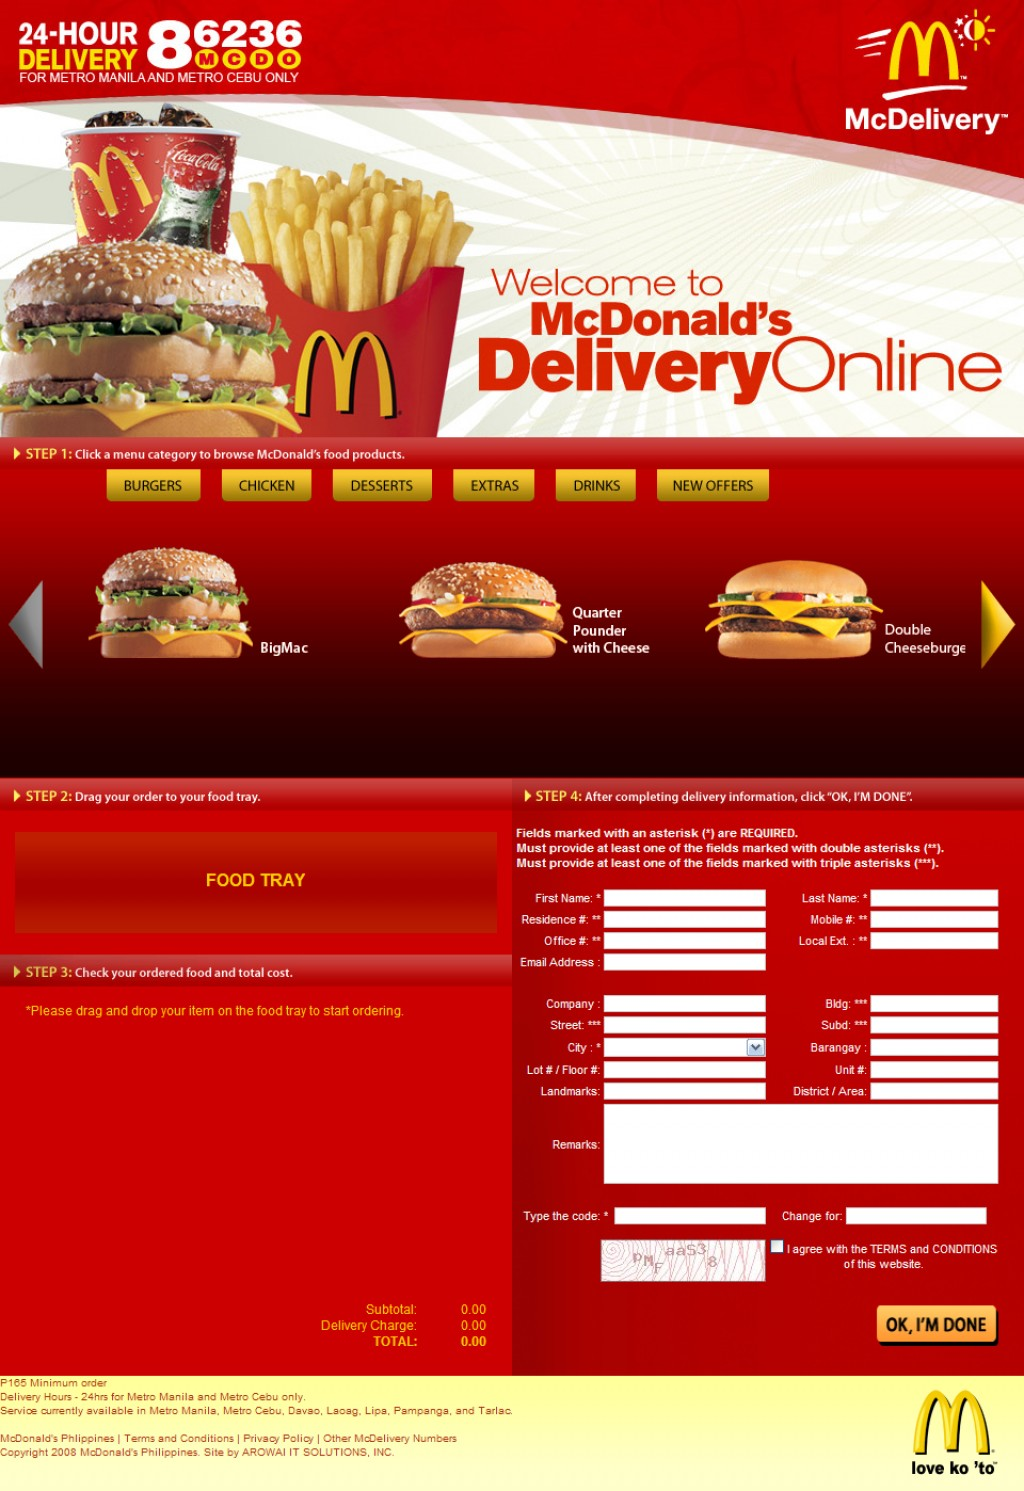 Delivery Hours Availability. The store in your area is available for delivery till 0. Please complete your order now. Continue. Sign In to Start. Email. Password. Remember Me. Yes, I would like to receive emails from McDonald's™ regarding offers and promotions. Sign In. Already have an account? Welcome, Sign In to Start your Order.